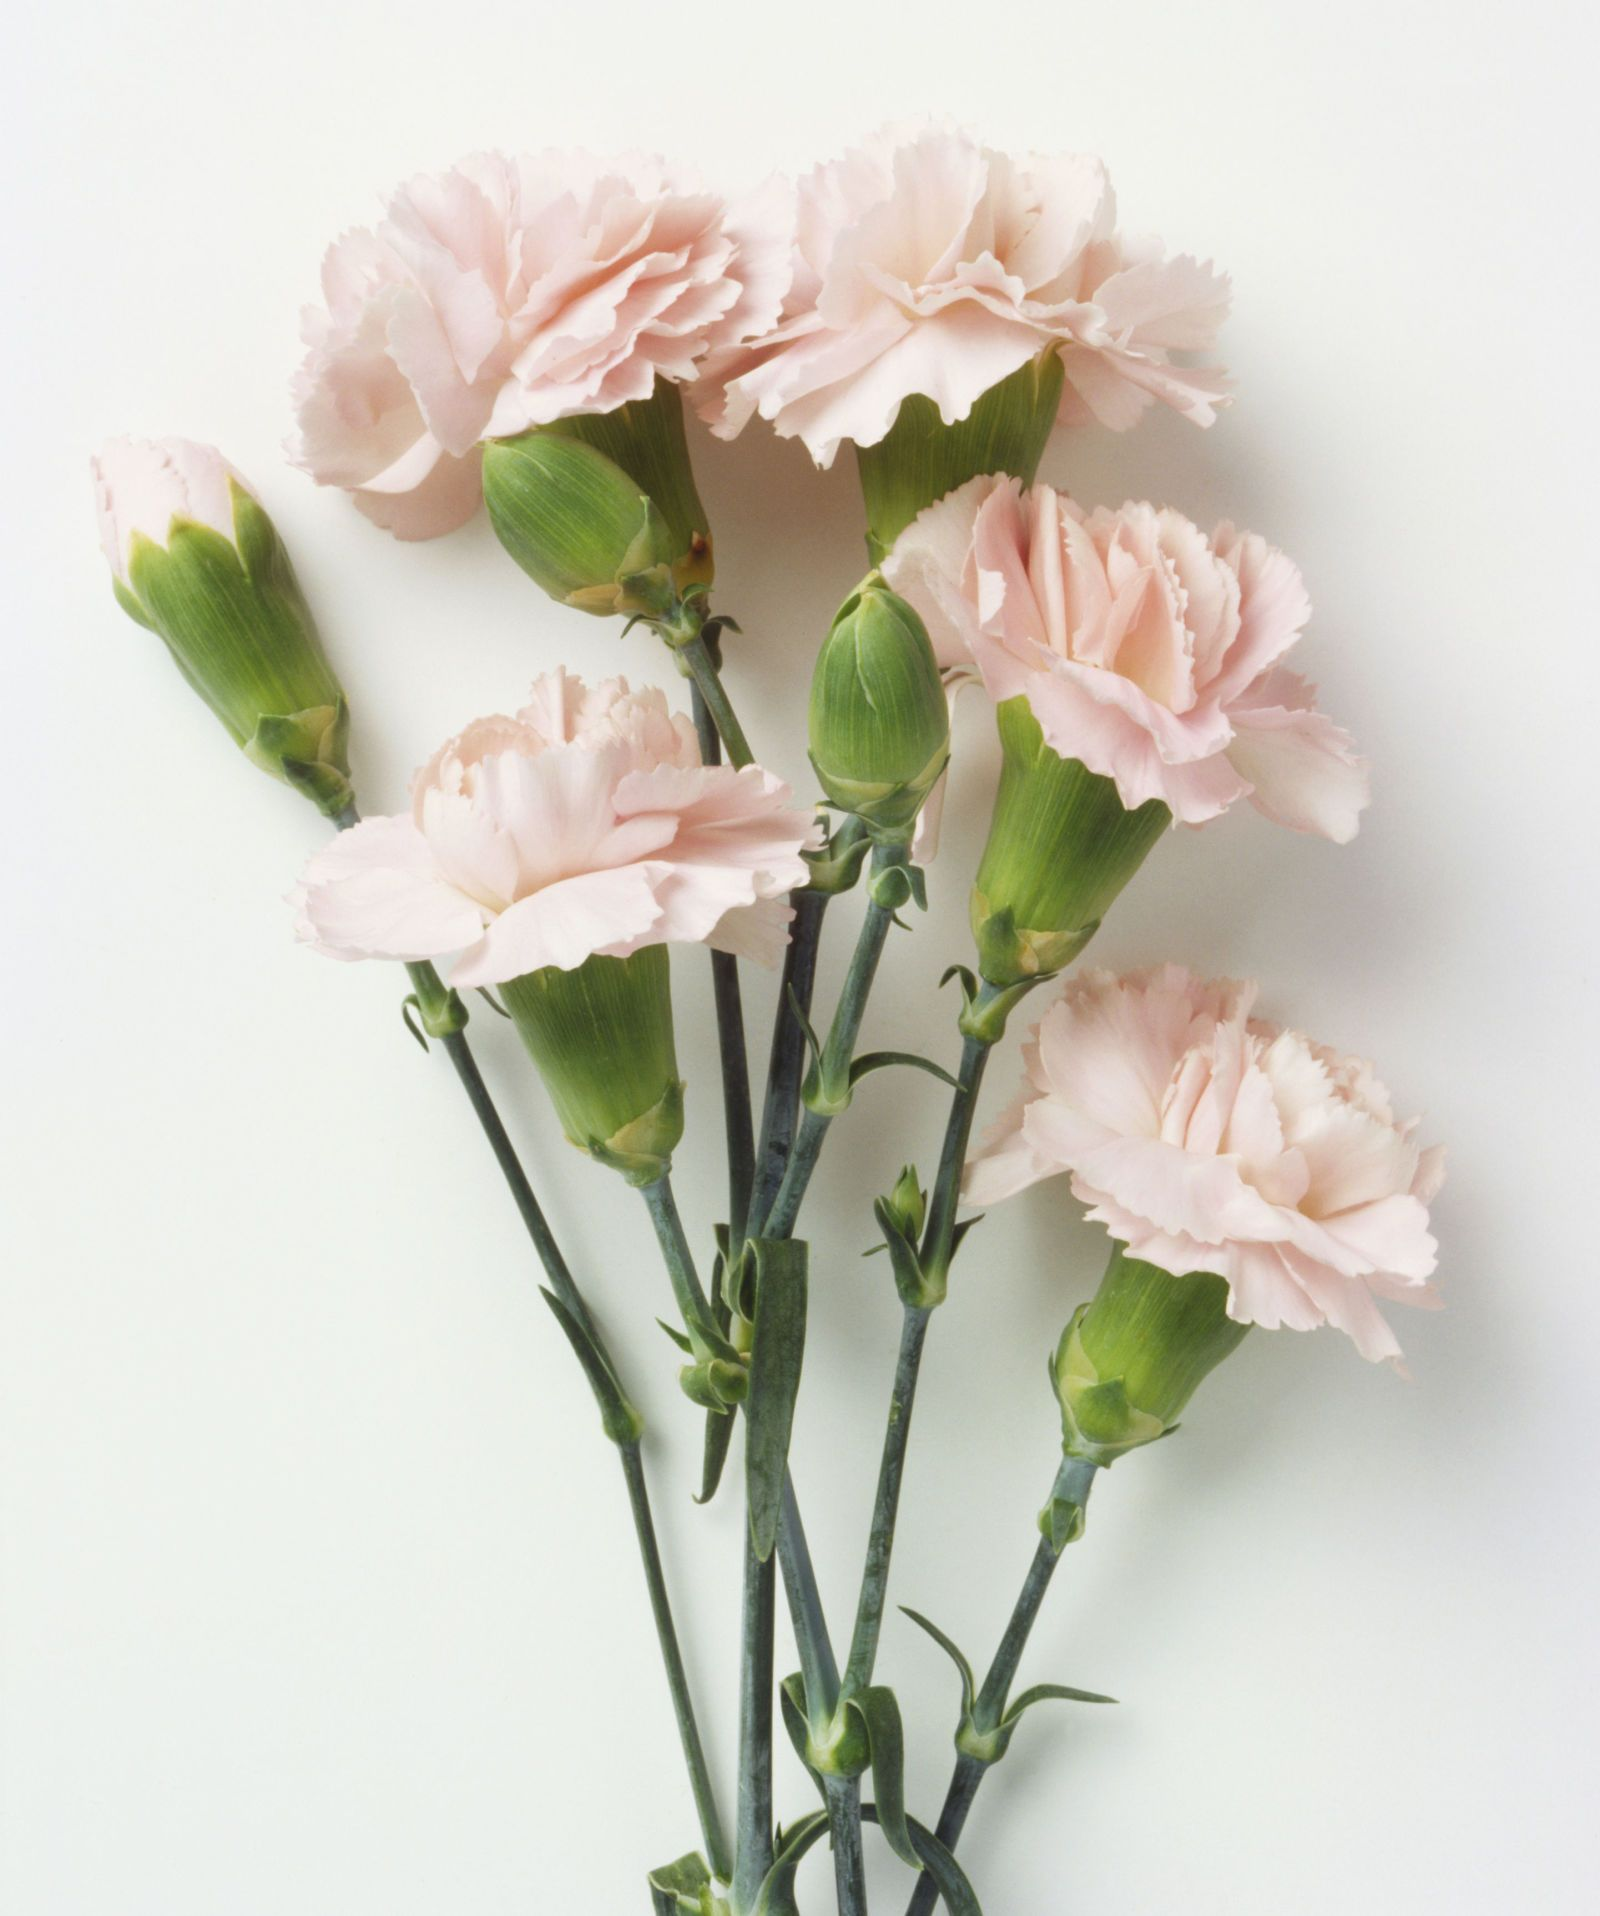 9 Reasons Carnations Are Actually The Best Carnation Flower Growing Carnations Carnations